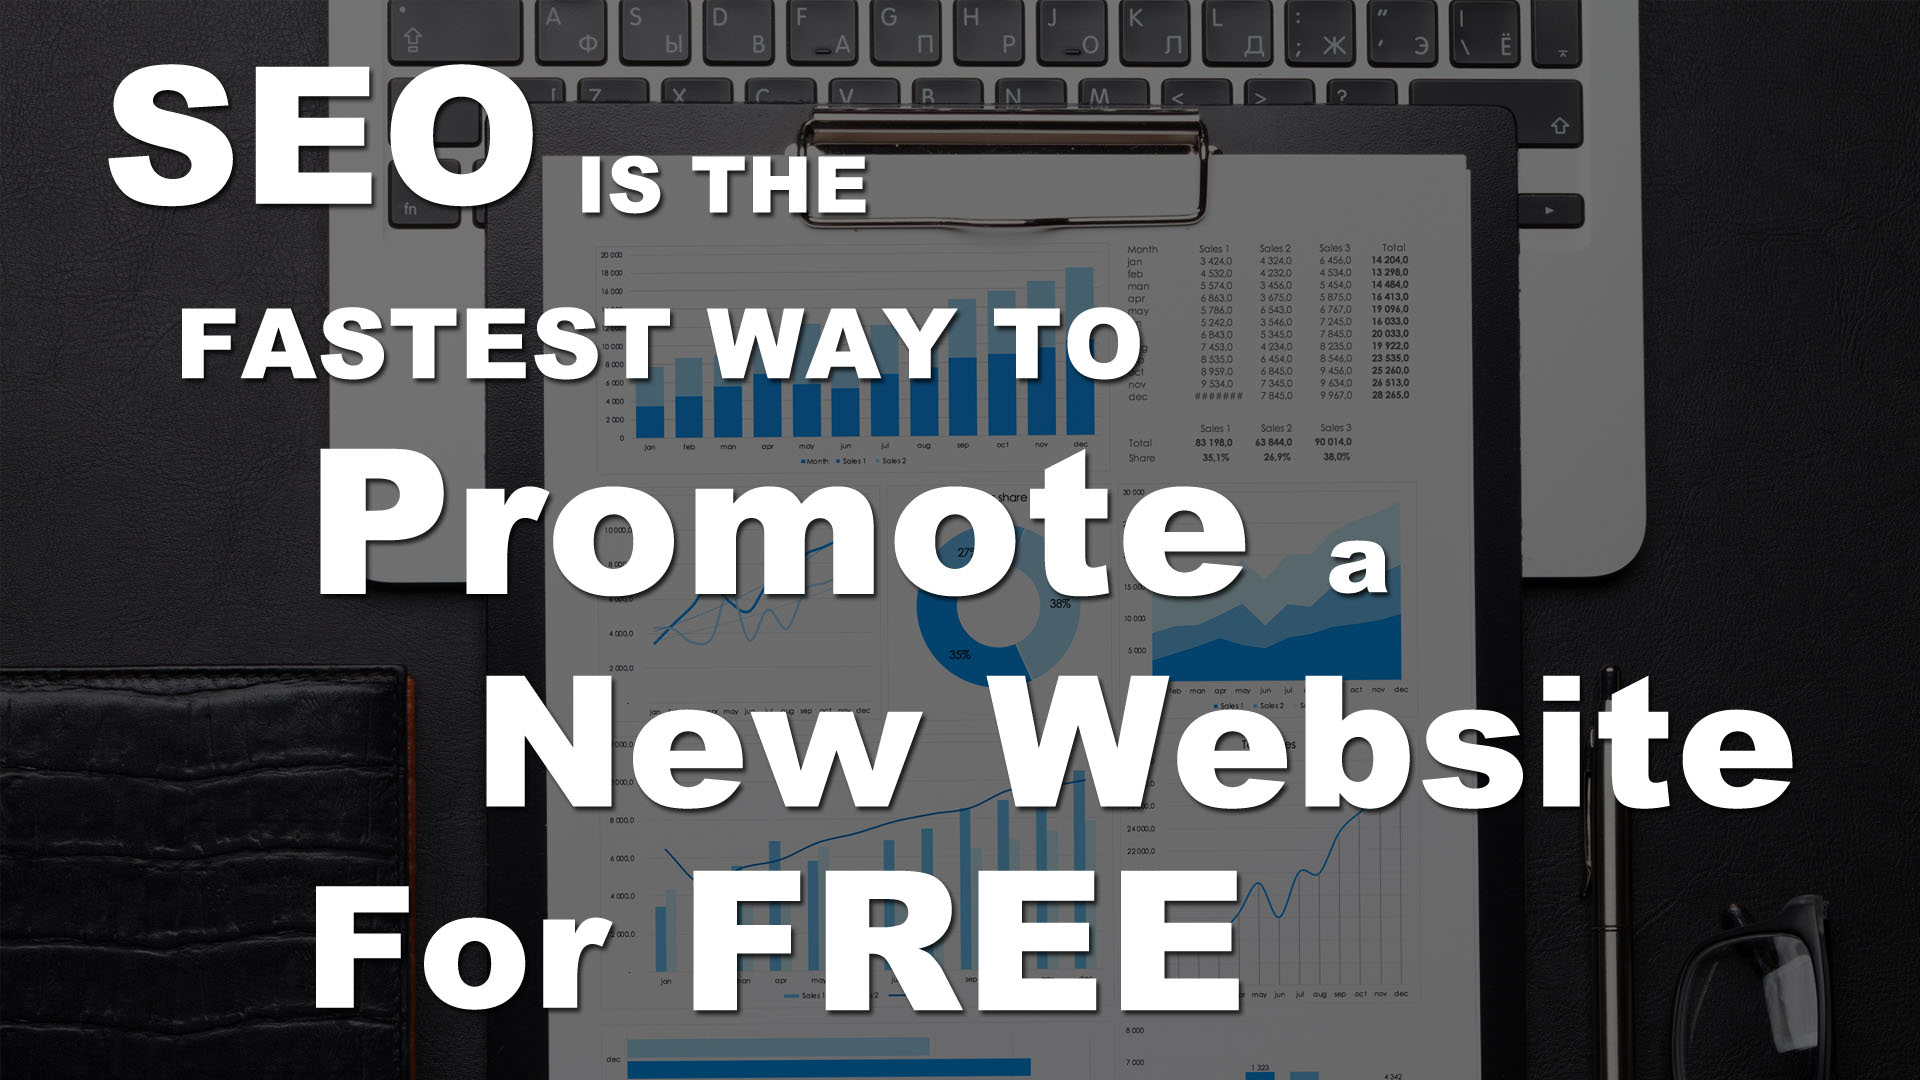 How to Promote a New Website for Free - Fastest